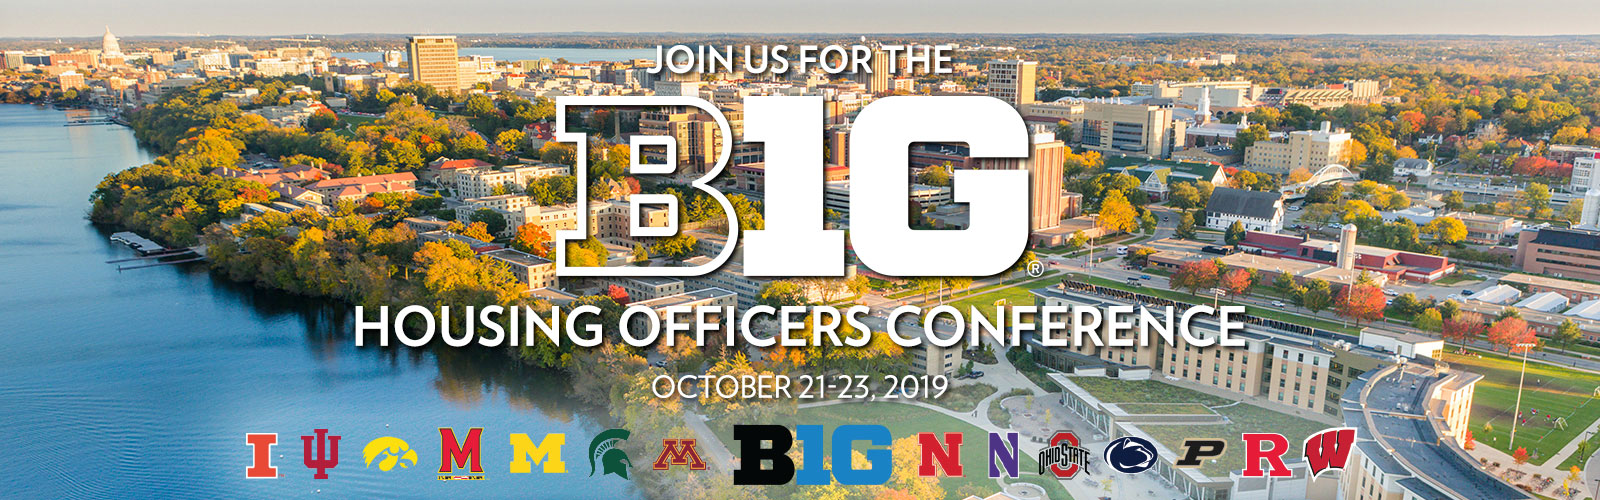 Join us for the Big 10 Housing Officers Conference, Oct. 21-23, 2019